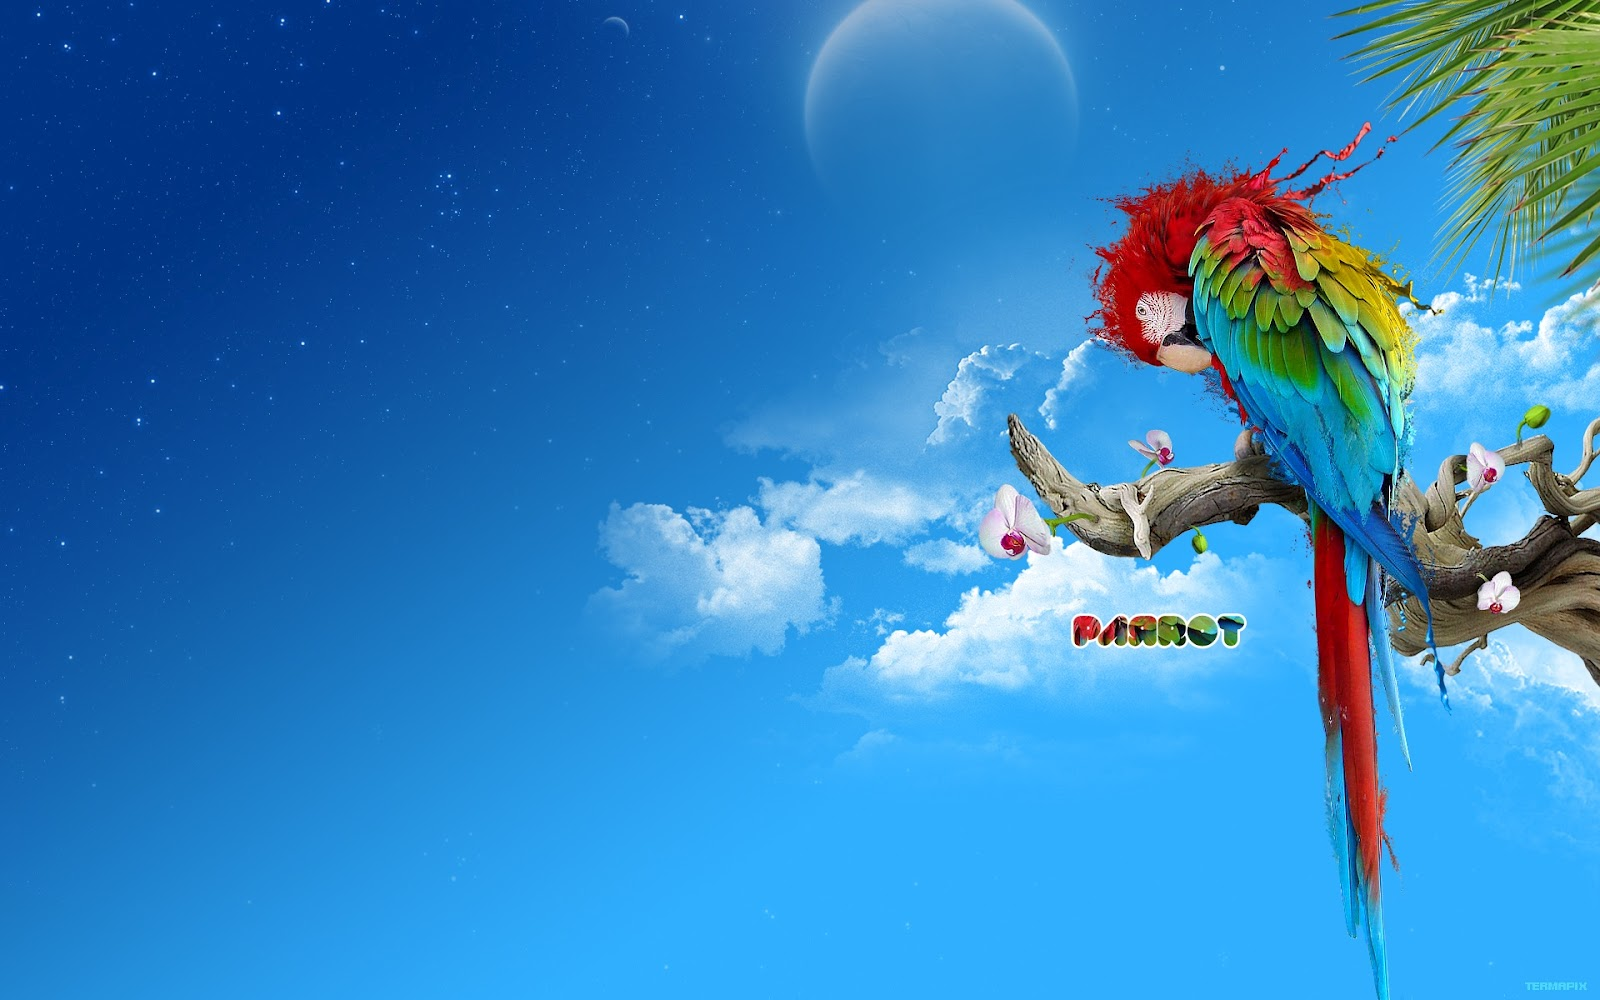 Hd Wallpaper Art : Parrot colors abstract digital art hd wallpapers free